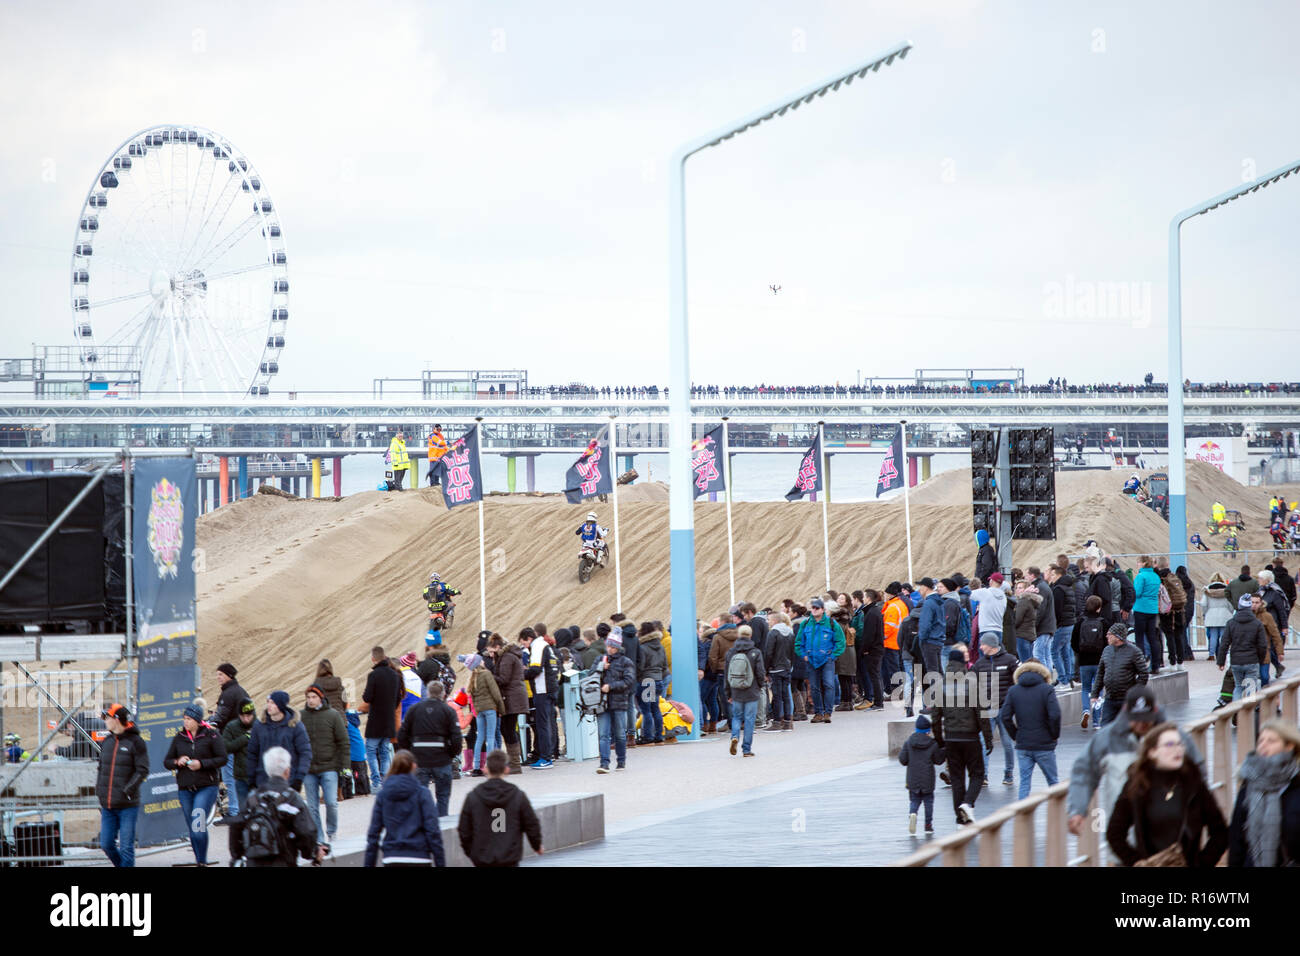 """The Hague, Netherlands. 10th November 2018. 982 motocross riders on the beach of Scheveningen who give everything to be the first to reach the finish.  Red Bull Knock Out is part of """"Feest aan Zee"""" in which The Hague celebrates that the seaside resort of Scheveningen exists for 200 years.from all Europe have participated in the """"Red Bull Knock Out 2018"""" in The Hague, Credit: Gonçalo Silva/Alamy Live News - Stock Image"""